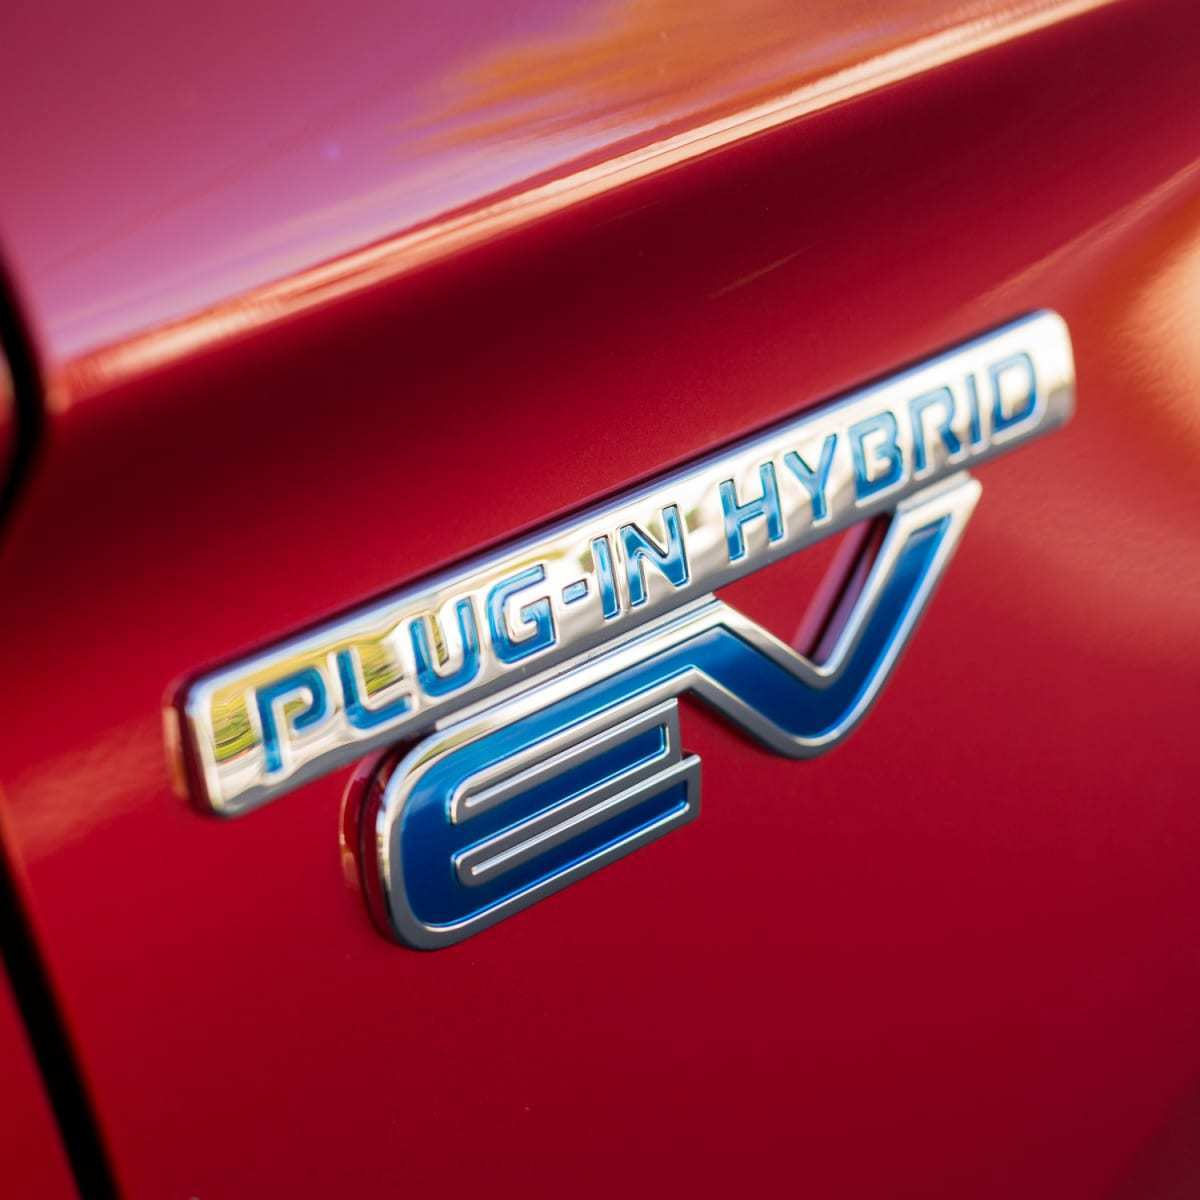 54 Gallery of Mitsubishi Hybrid 2020 Pictures with Mitsubishi Hybrid 2020